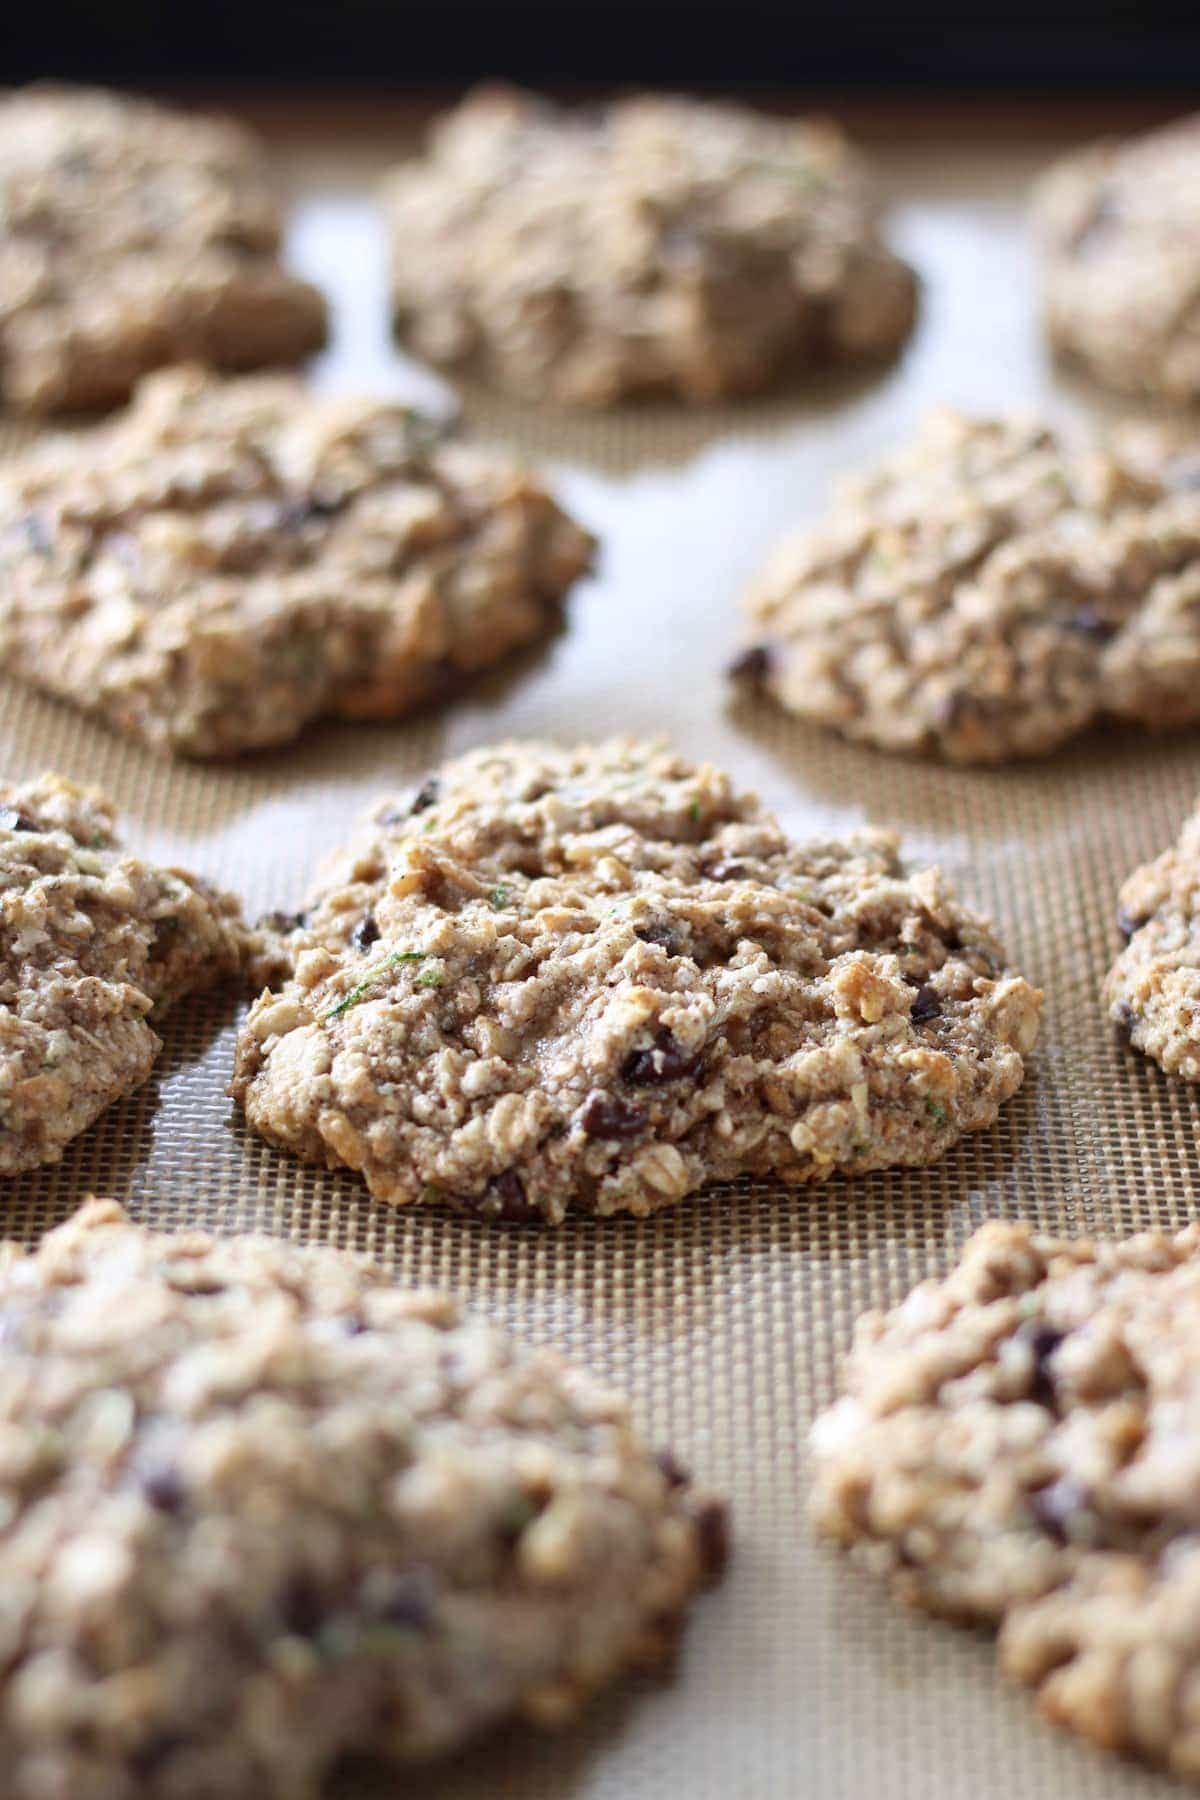 zucchini oatmeal cookies cooking on a silicone baking mat